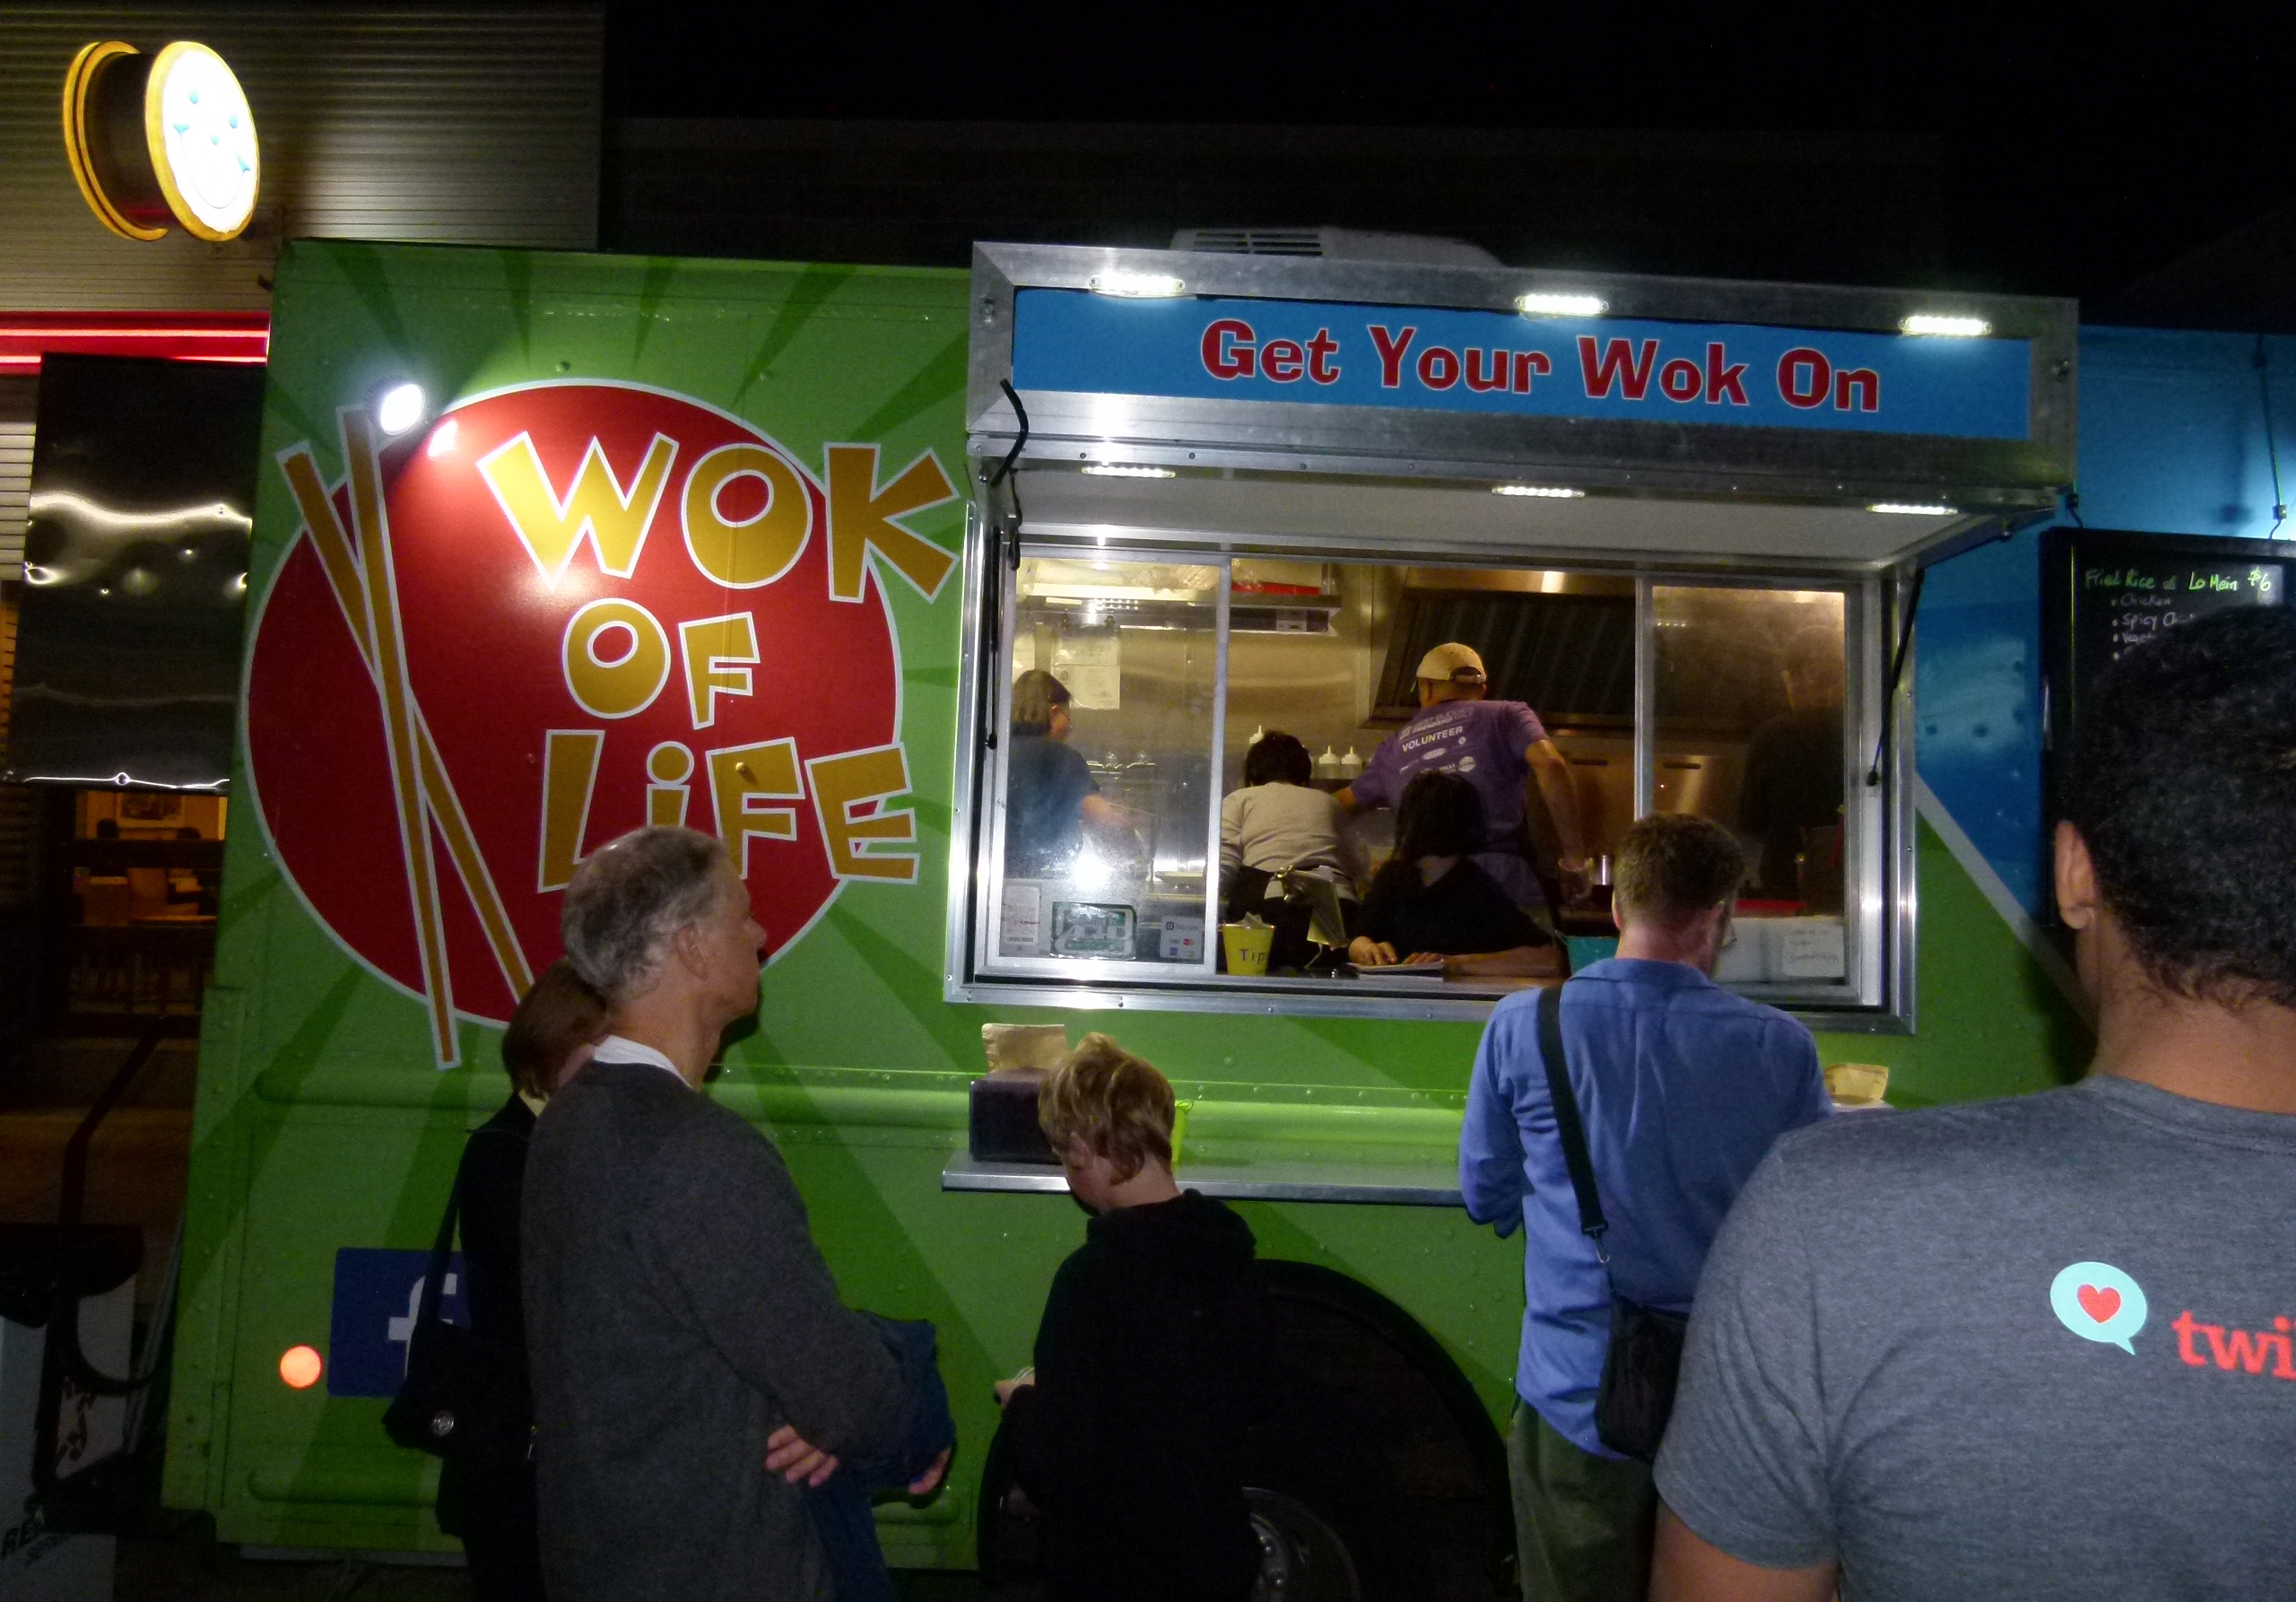 The crew at Wok of Life food truck rapidly preparing hungry patrons' orders as the Eat'n Park lighted Smiley Cookie sign illuminates from above.